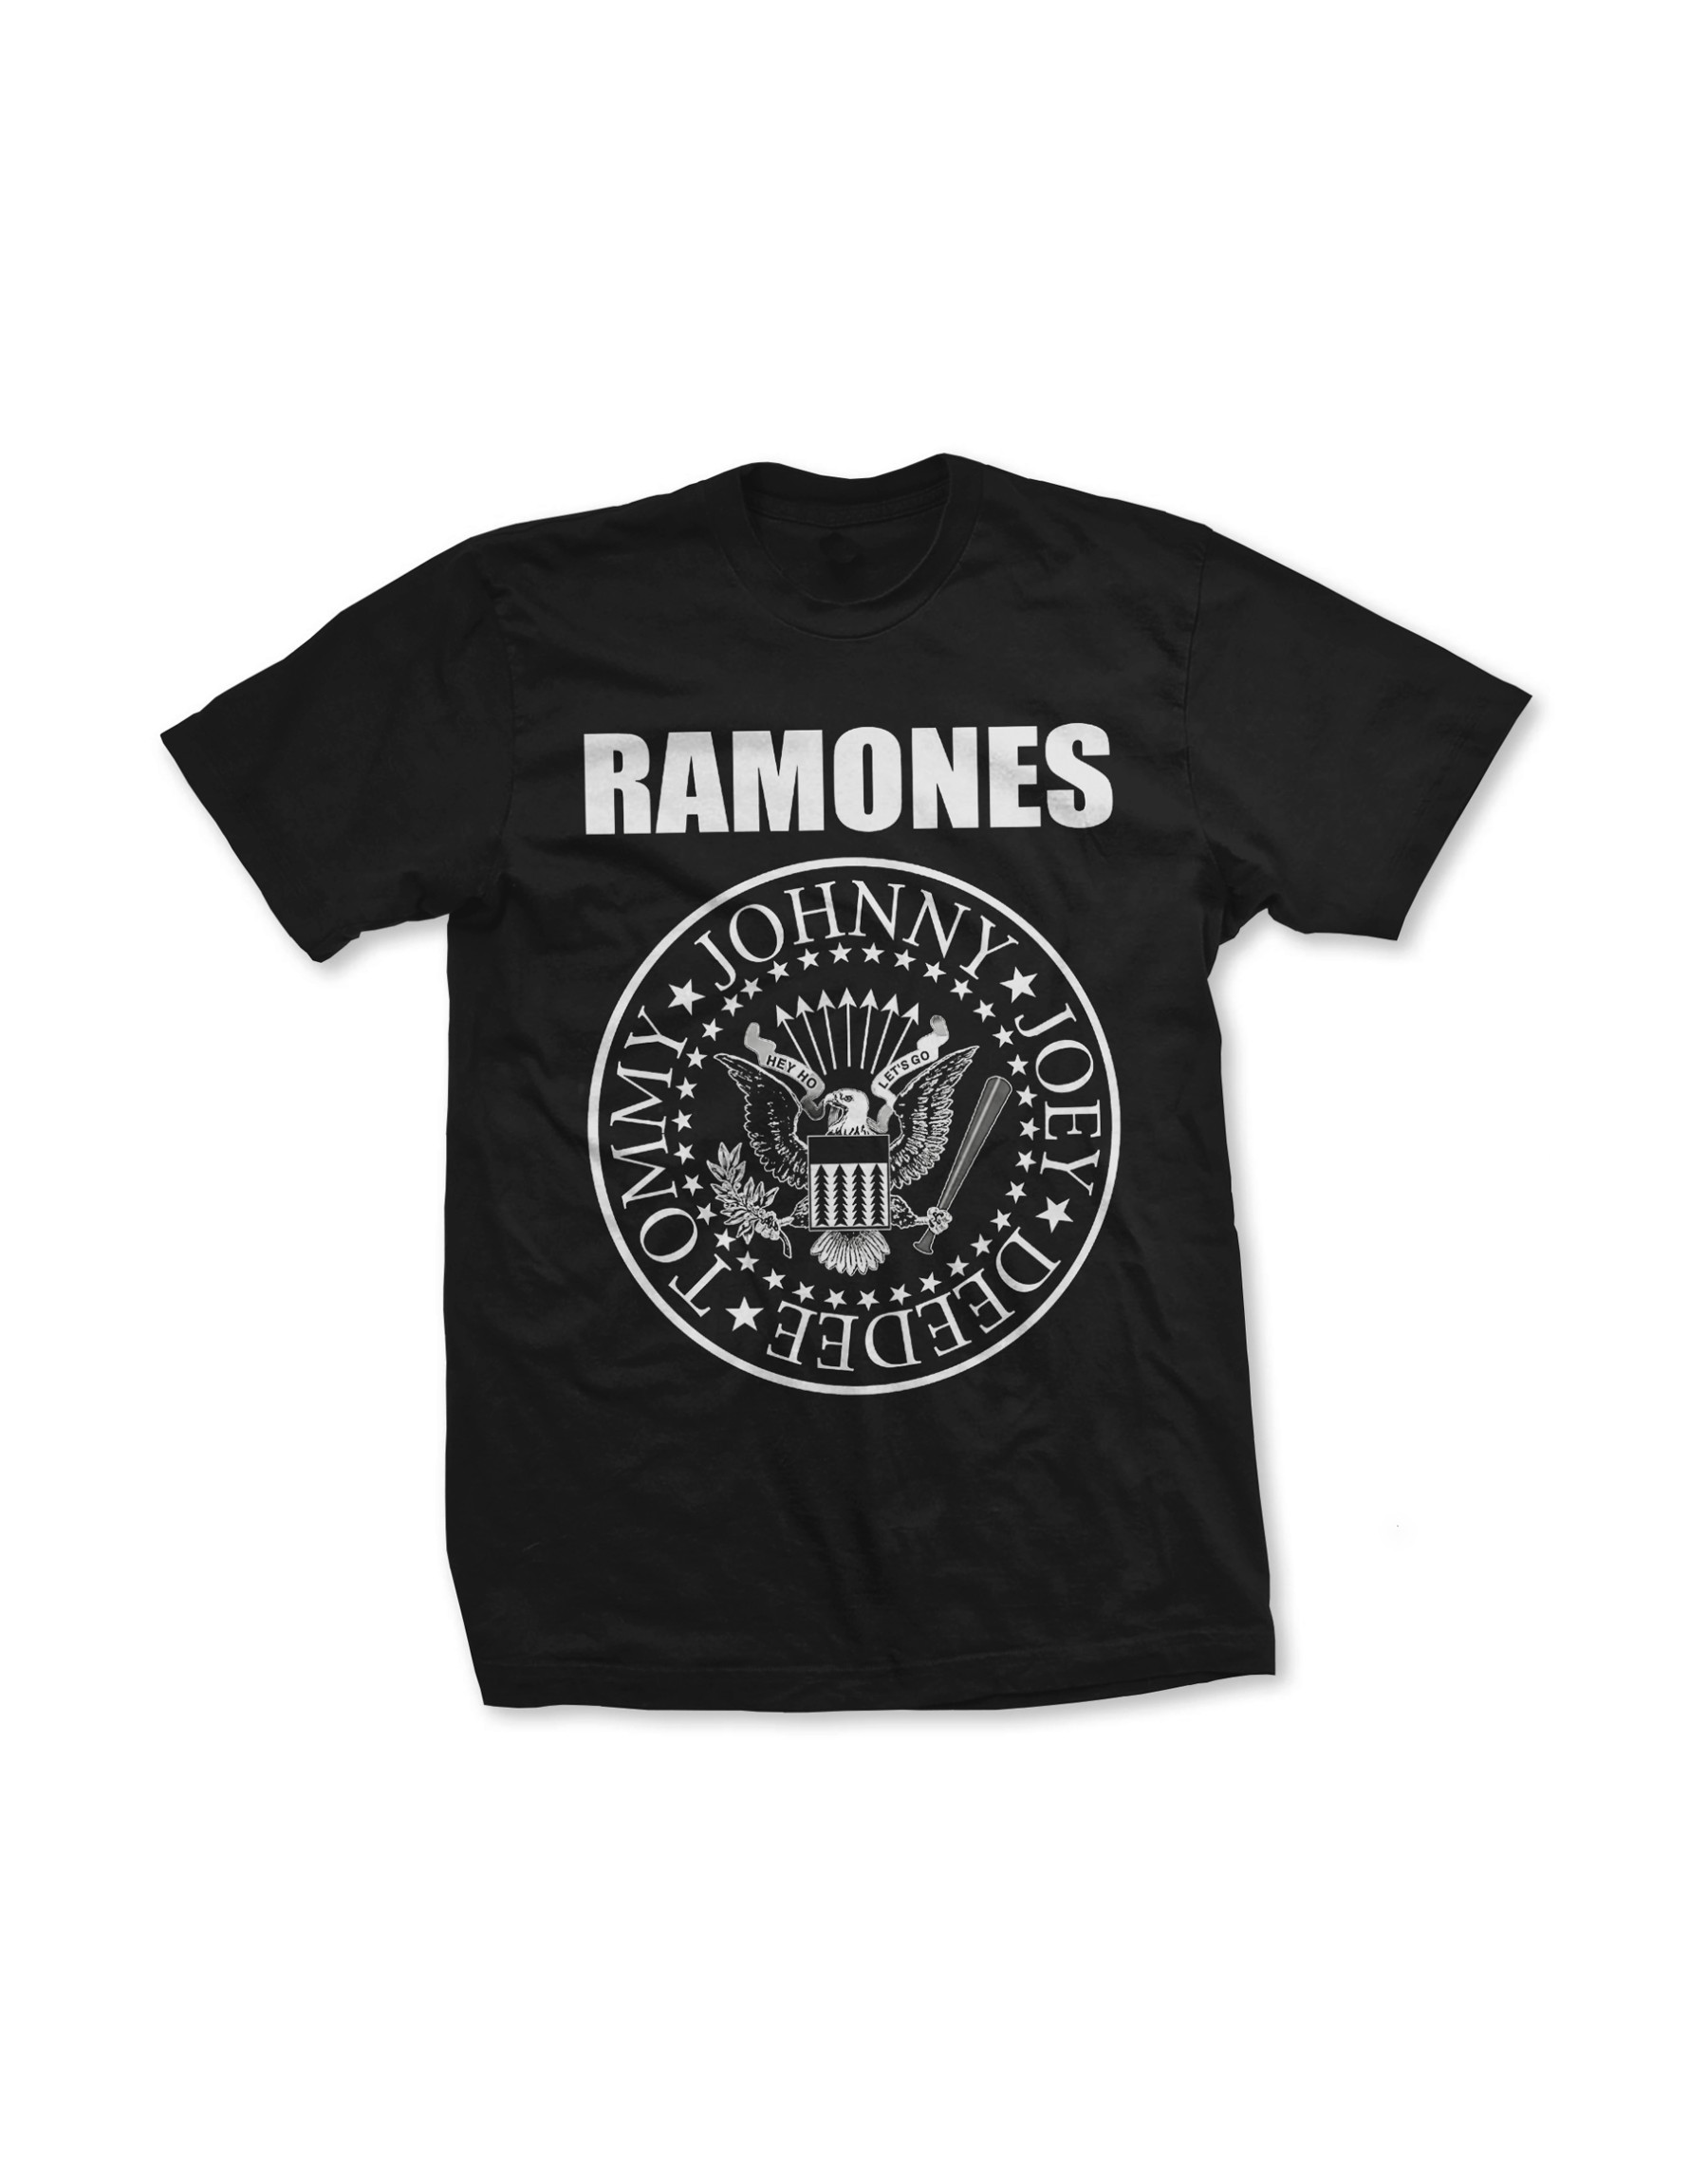 Ramones Boys Presidential Seal T-Shirt